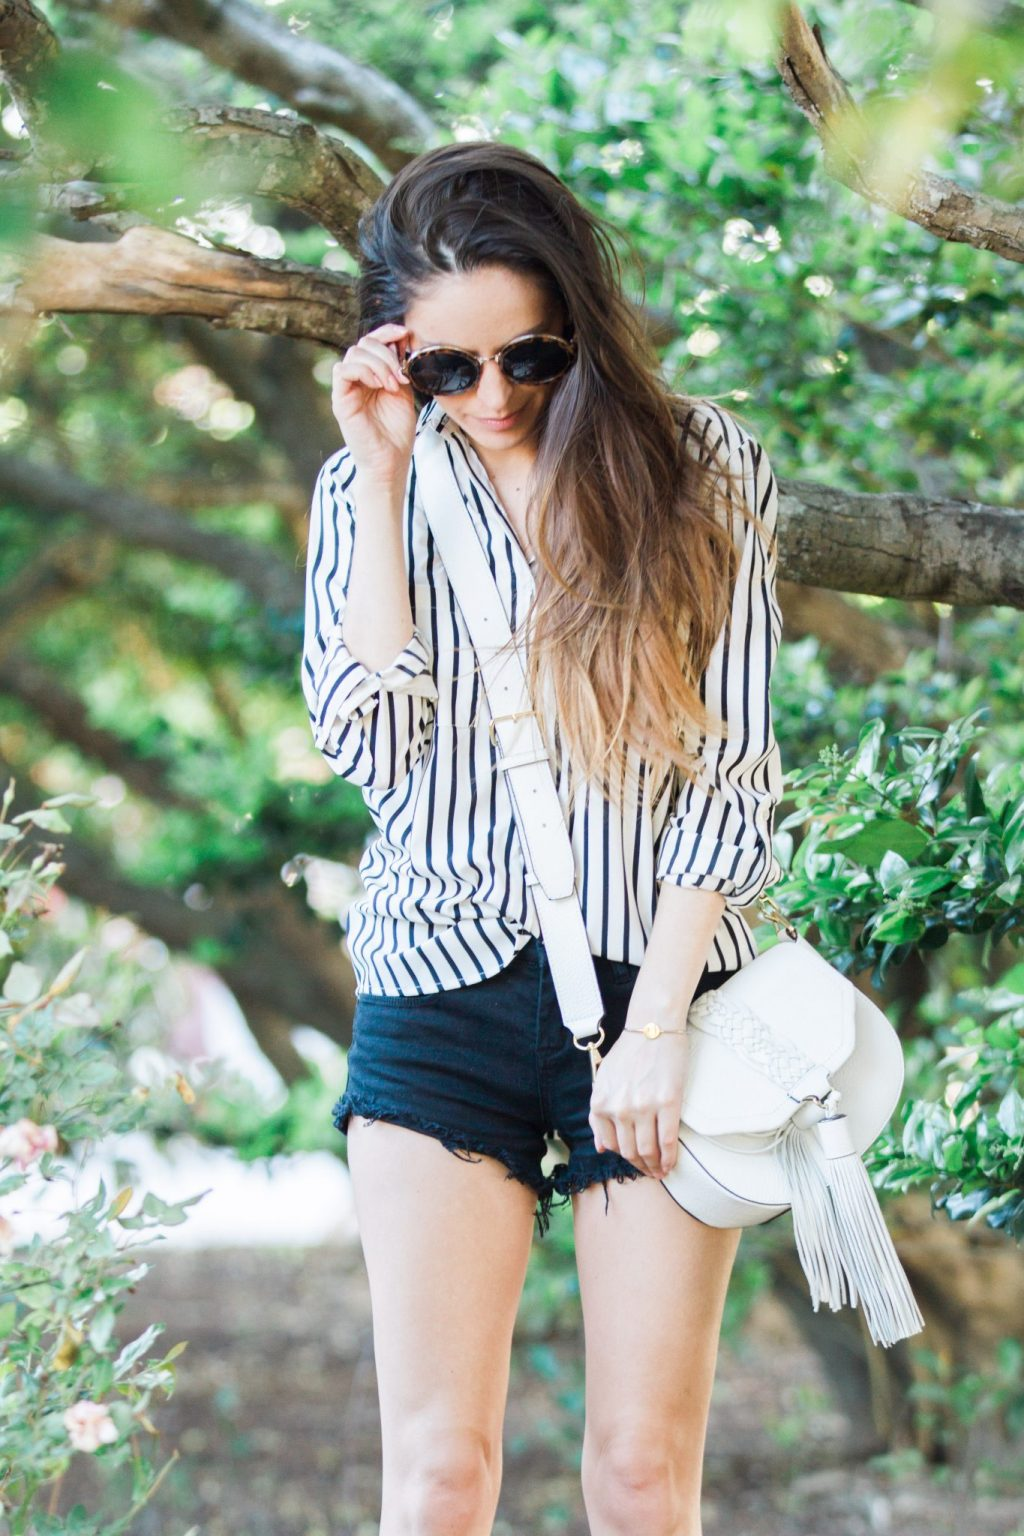 vertical stripes, black and white outfit ideas, how to wear black and white in the summer, spring neutrals, summer neutrals, white rebecca minkoff isobel saddle bag in white, casual spring outfit ideas, casual summer outfit ideas, simple summer style